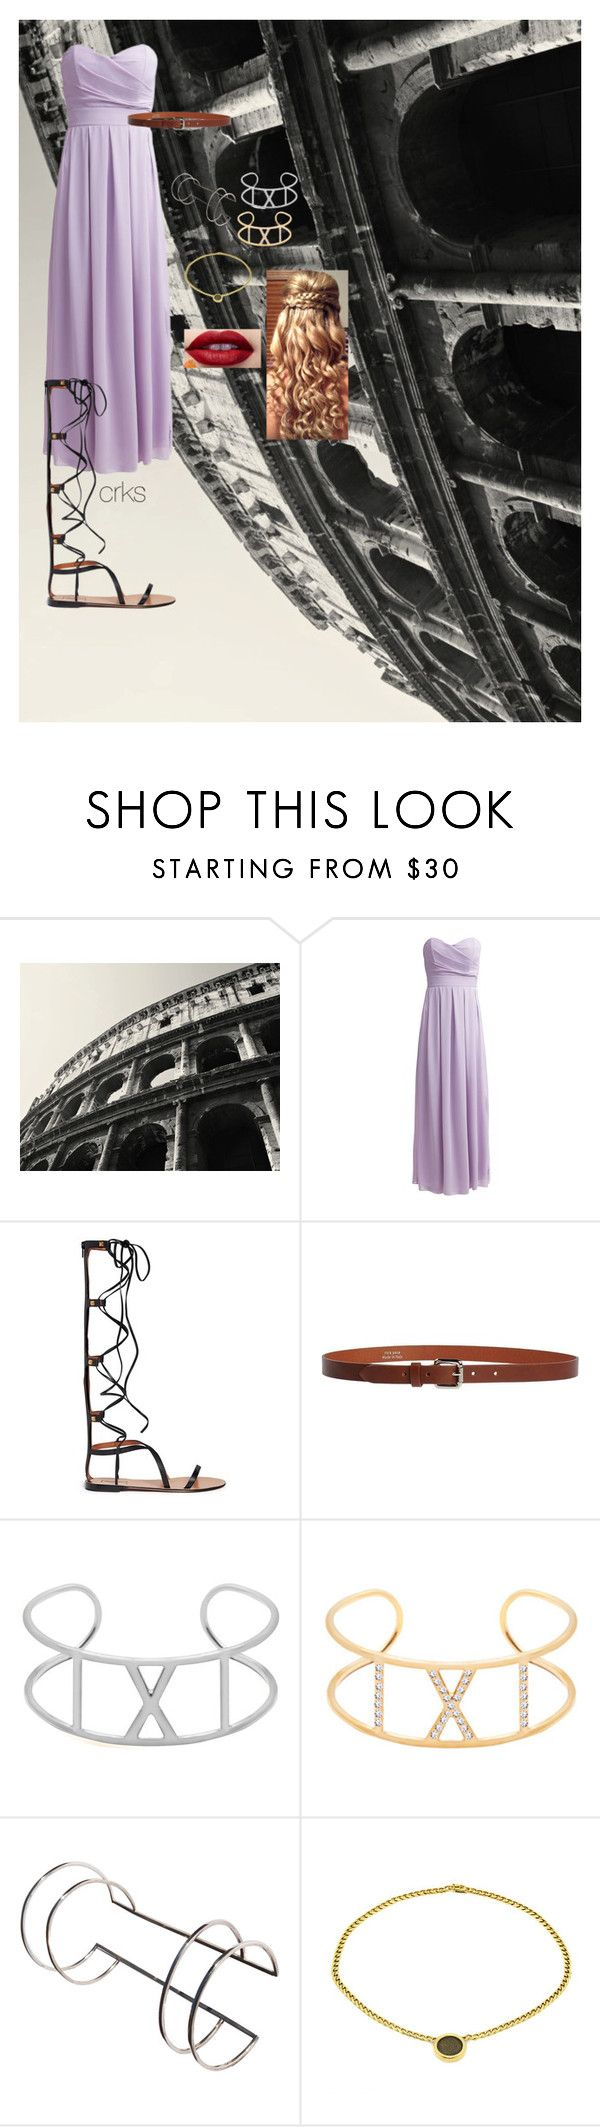 """""""Roman Outfit"""" by crks ❤ liked on Polyvore featuring Colosseum, TFNC, LAGUCIA, Nialaya, Mecurialist, Bulgari, purple, bracelet and roman"""